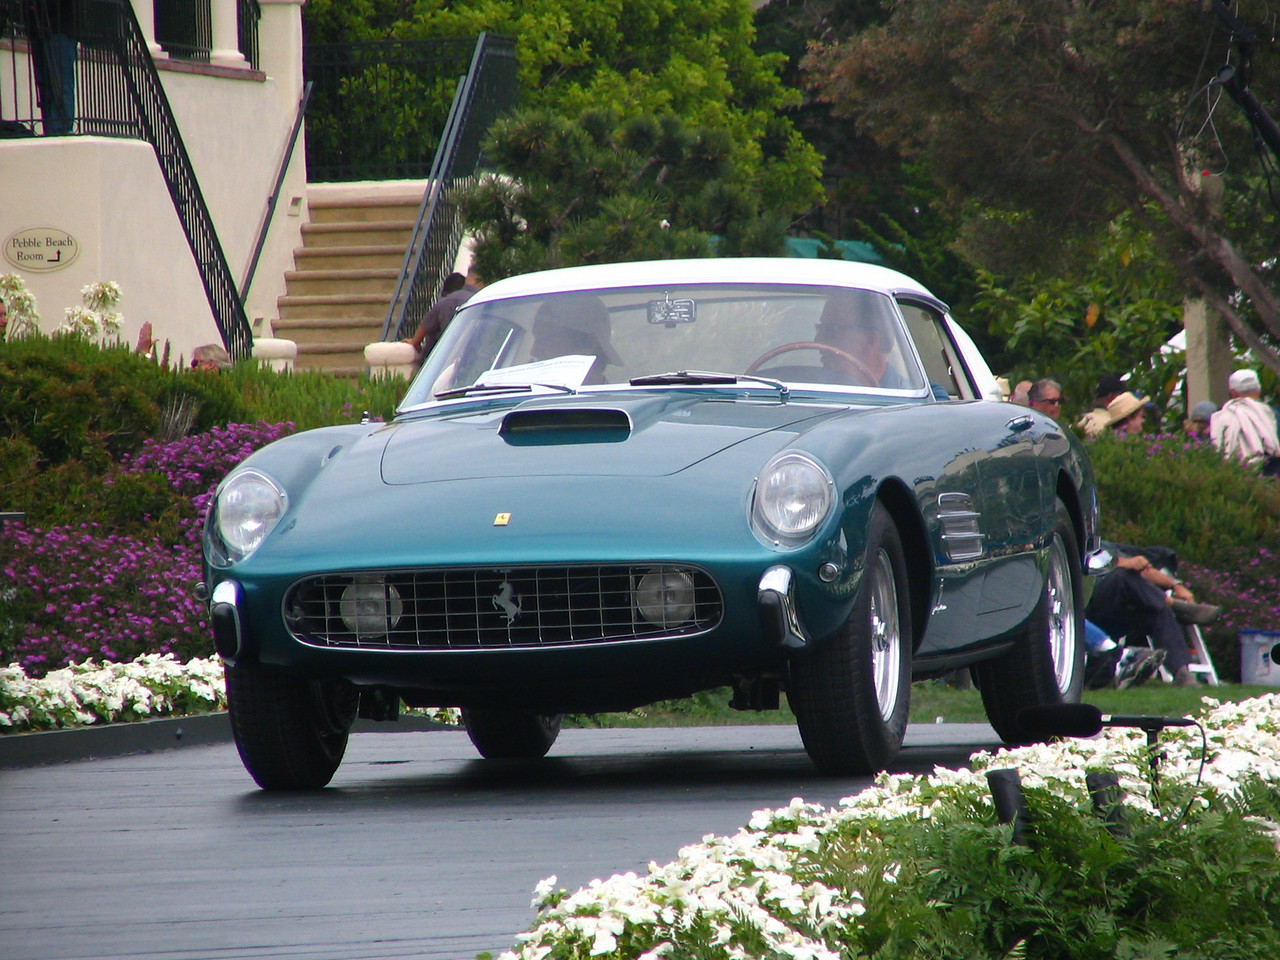 """Class M-1, Ferrari Grand Touring, Winner and Enzo Ferrari Trophy for the most outstanding Ferrari -- 1957 Ferrari 410 SA """"4.9 Superfast"""" Pinin Farina Coupe owned by Lee Herrington from Bow, New Hampshire"""